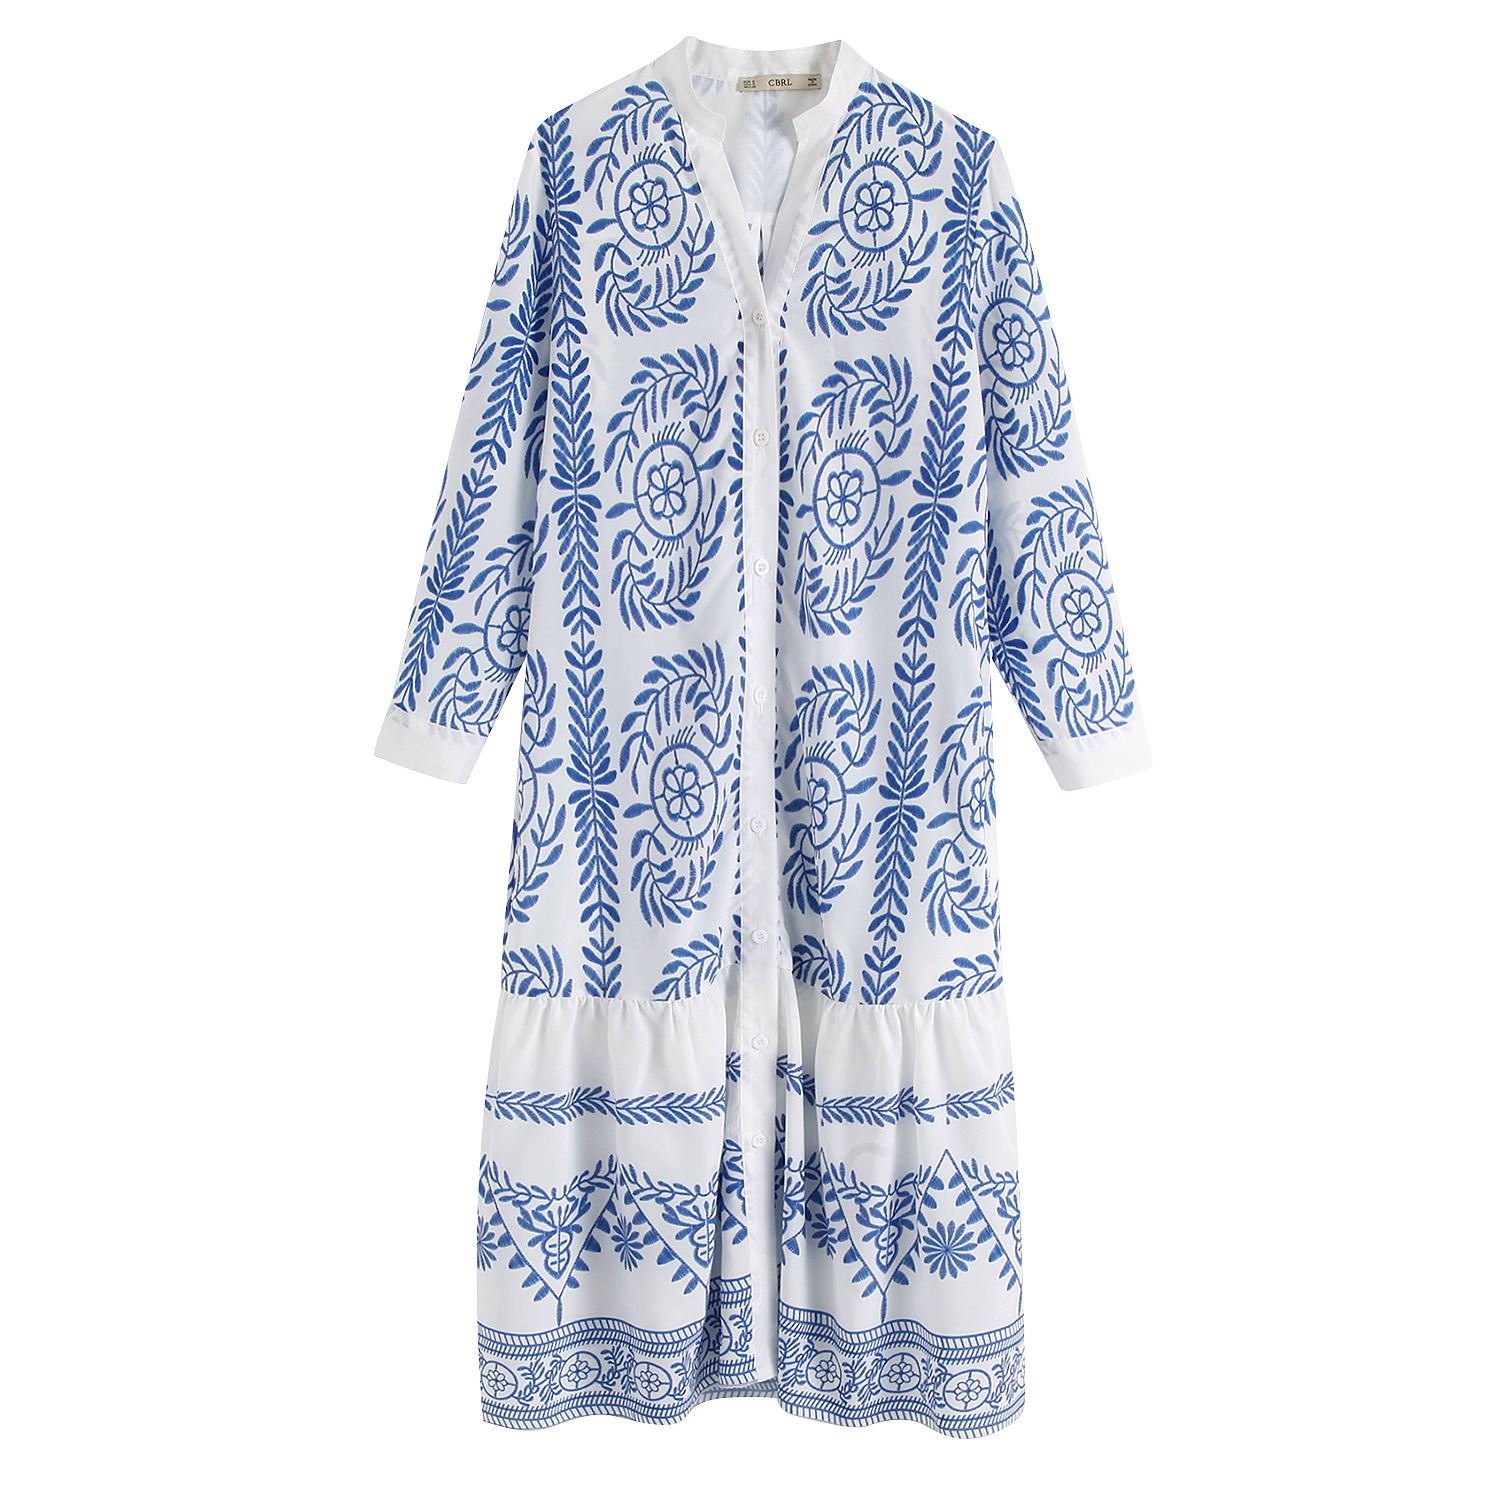 2019 Spring Europe And America WOMEN'S Dress New Style Blue Pattern Printed Long-sleeve Blouse-Dress 9643